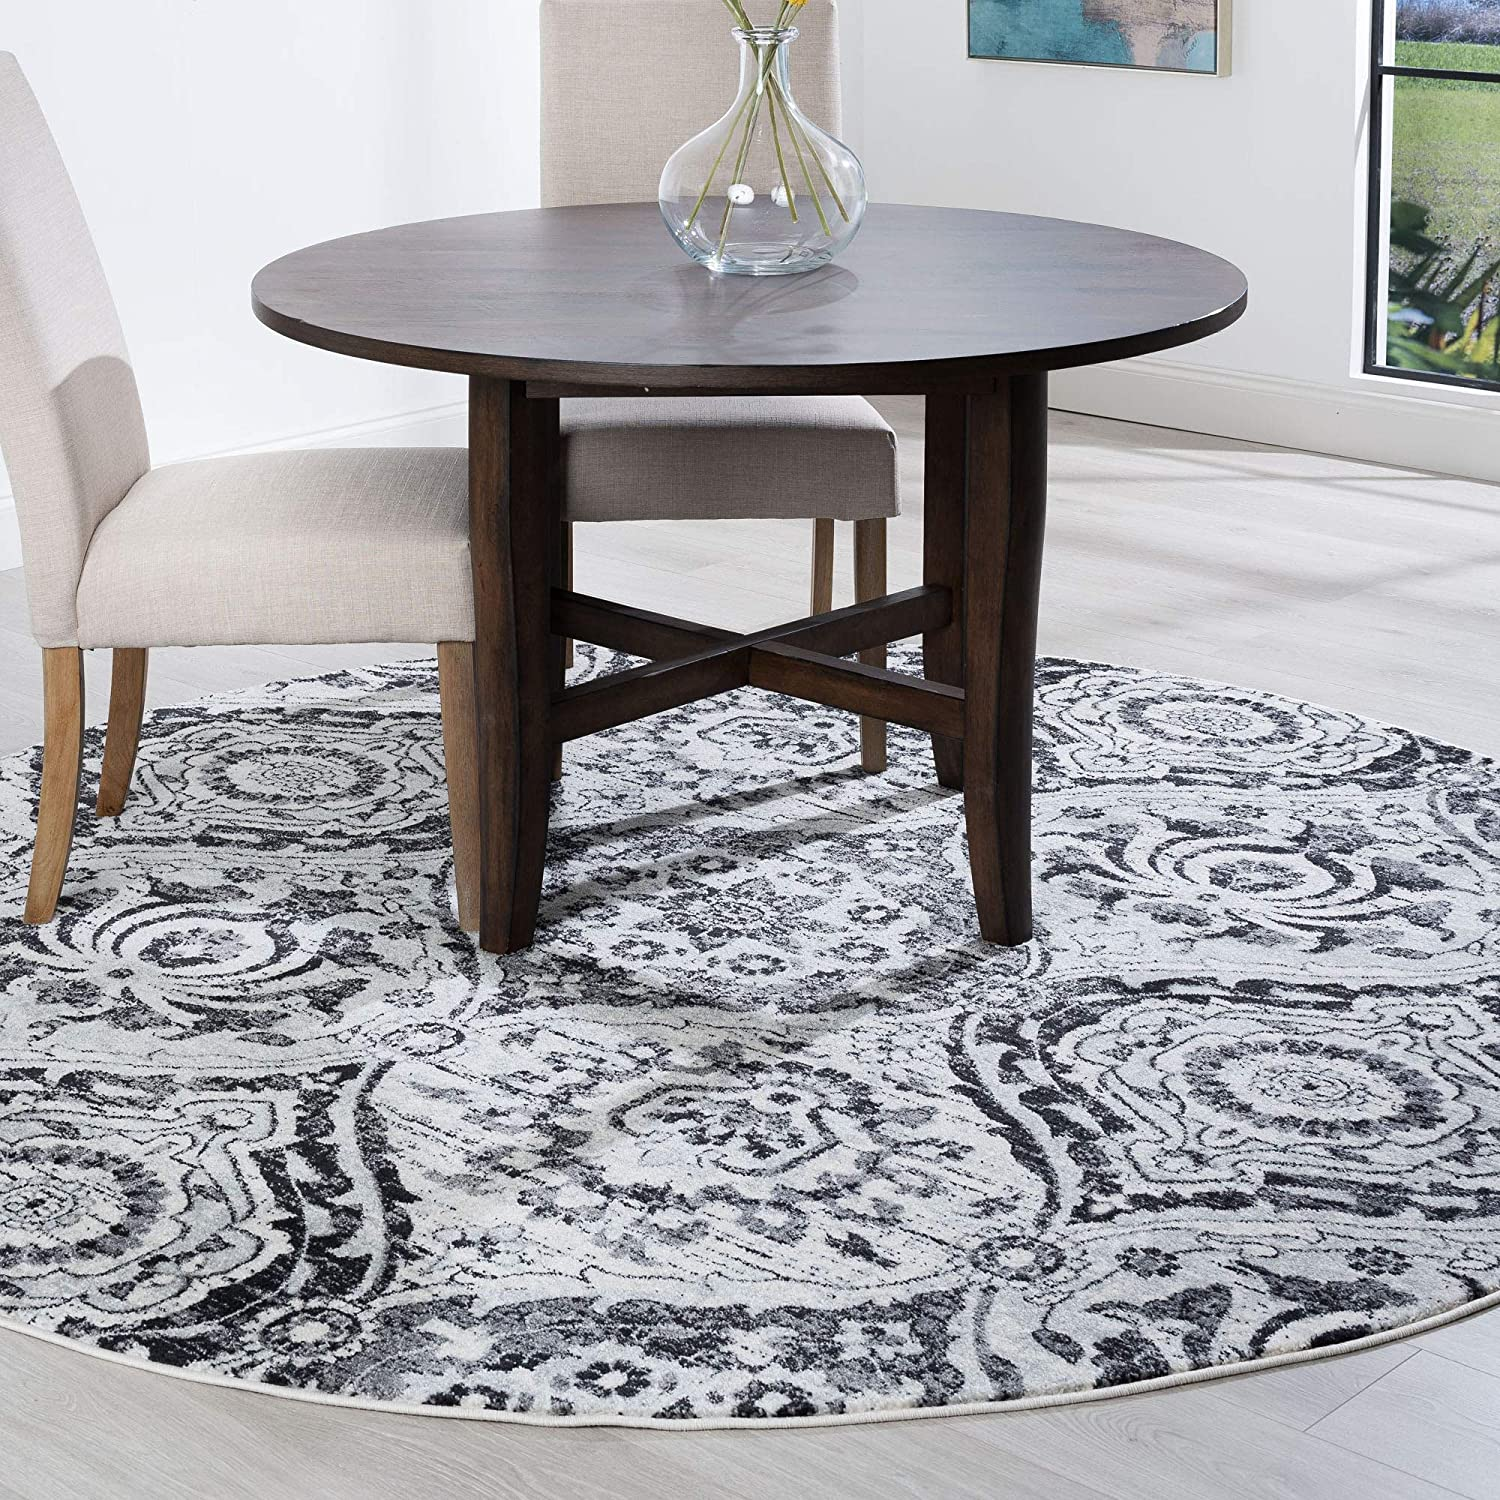 Amazon Com Tayse Beatrice Gray 6 Foot Round Area Rug For Living Bedroom Or Dining Room Boho Geometric Kitchen Dining